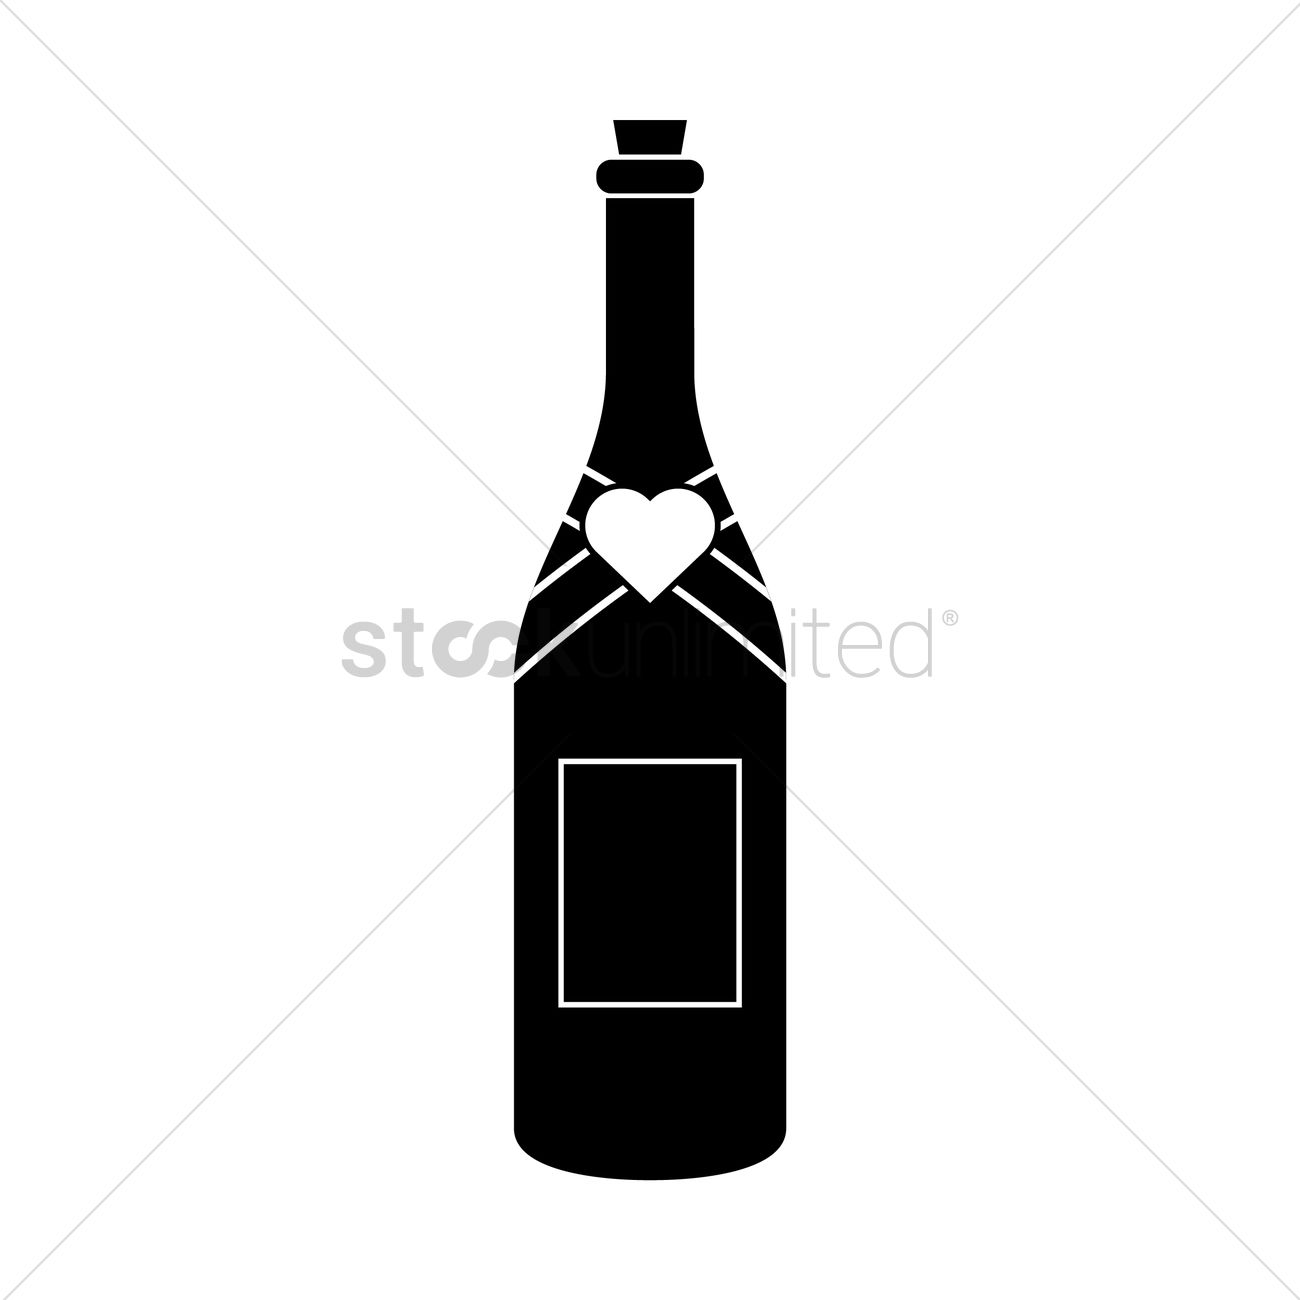 champagne bottle vector image 1493093 stockunlimited rh stockunlimited com